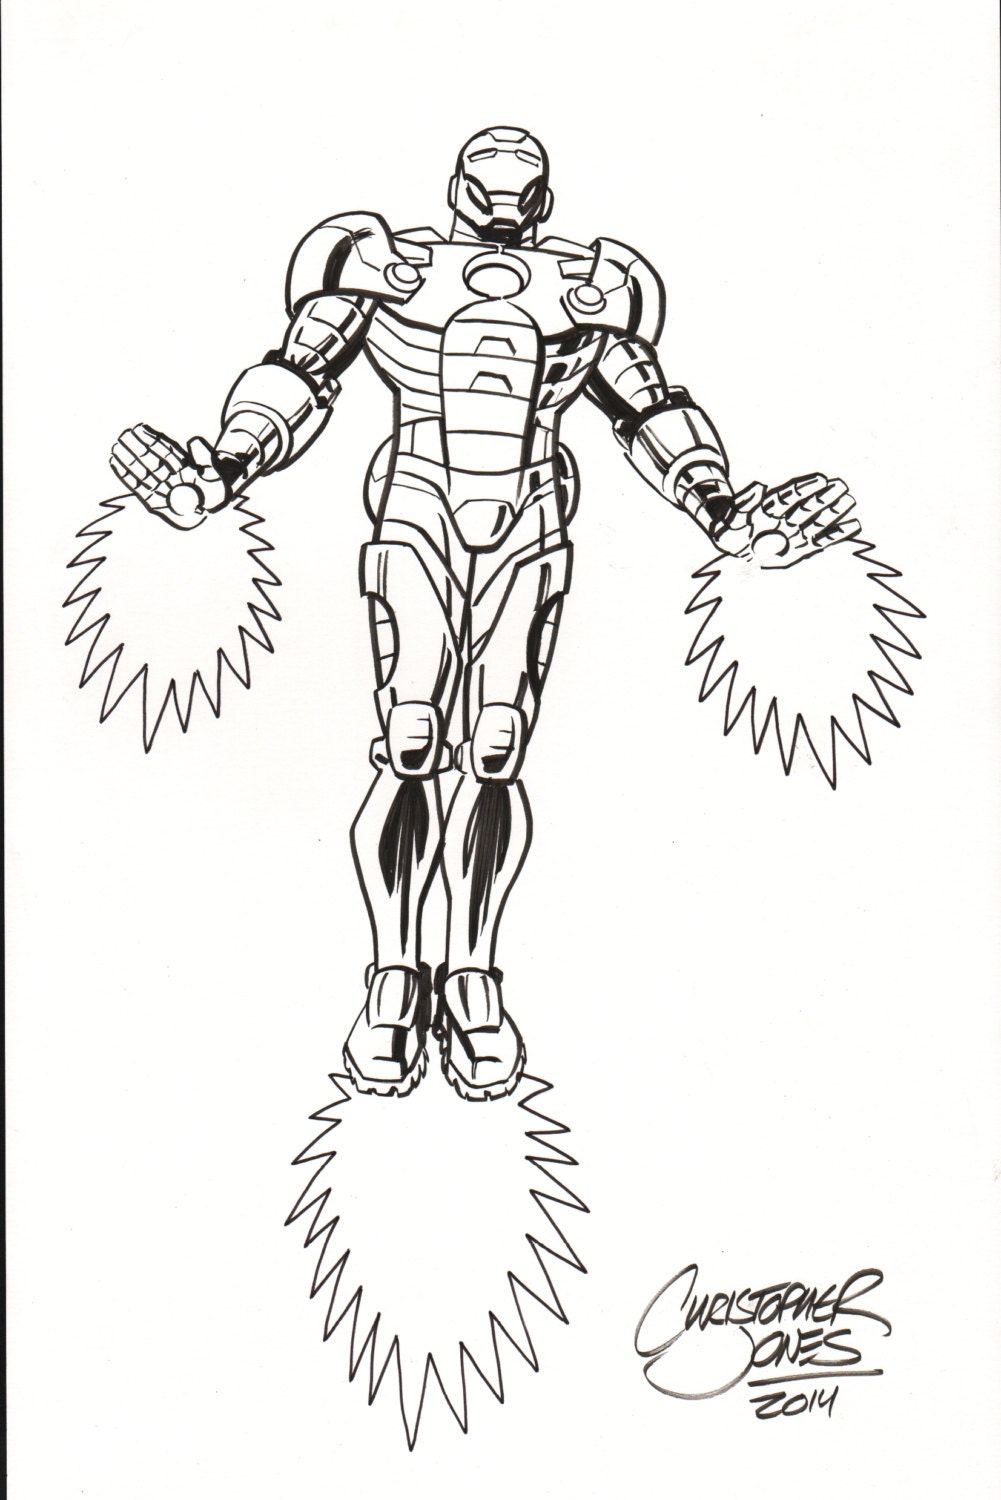 Line Art Etsy : Iron man original avengers line art by chrisjonesart on etsy